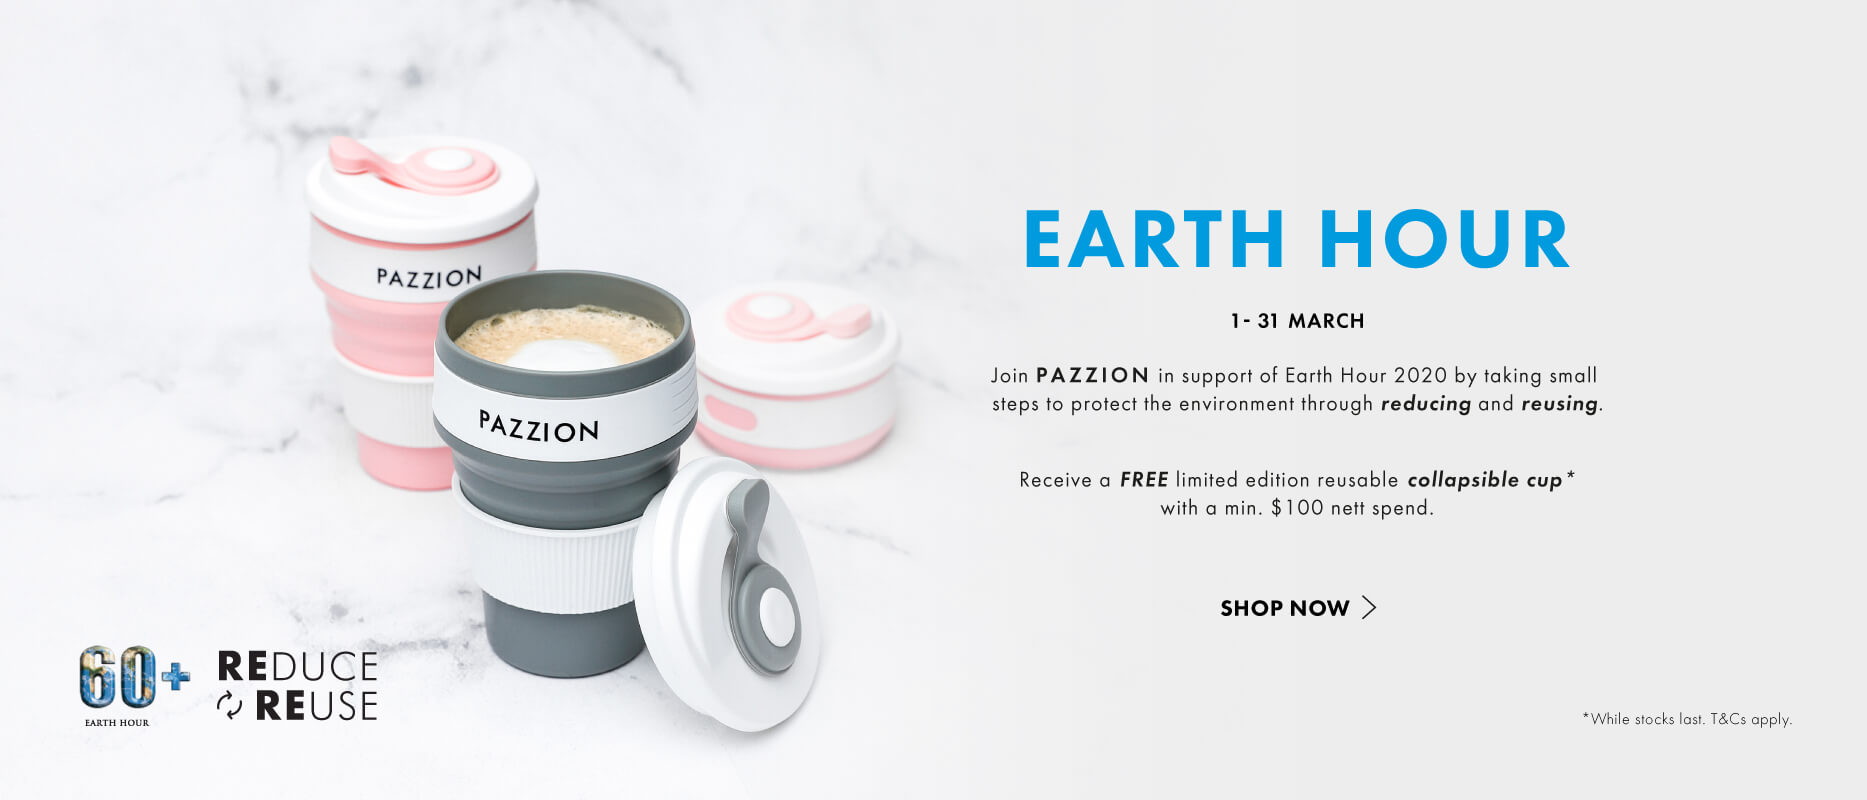 PAZZION - Earth Day 2020